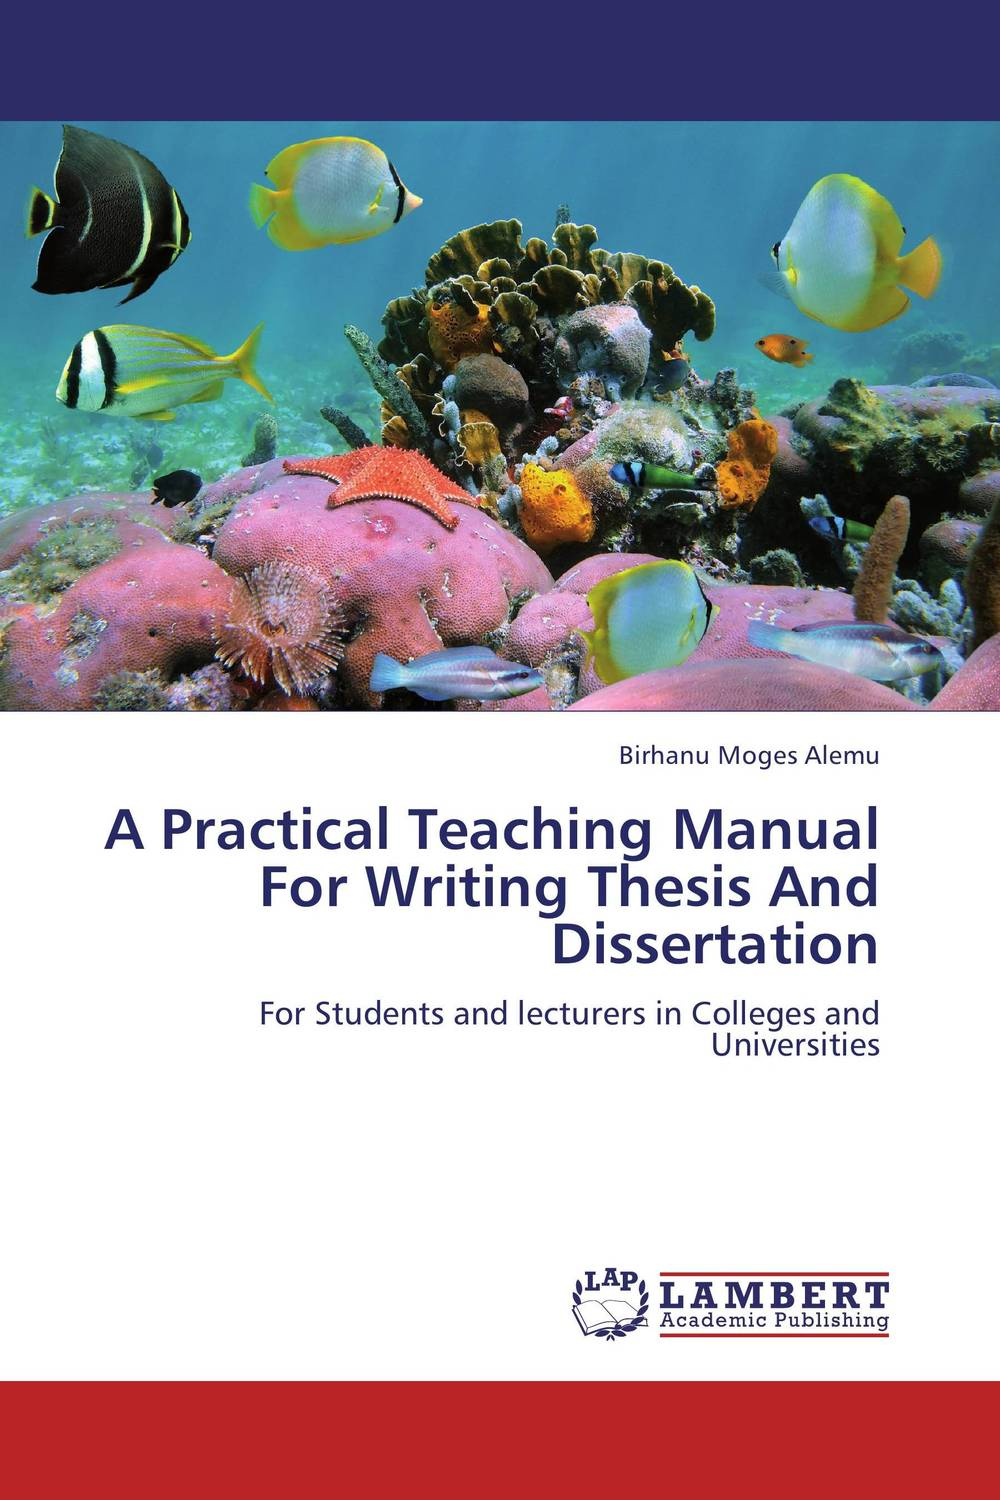 A Practical Teaching Manual For Writing Thesis And Dissertation jaw heffernan heffernan writing – a college handbook 3ed